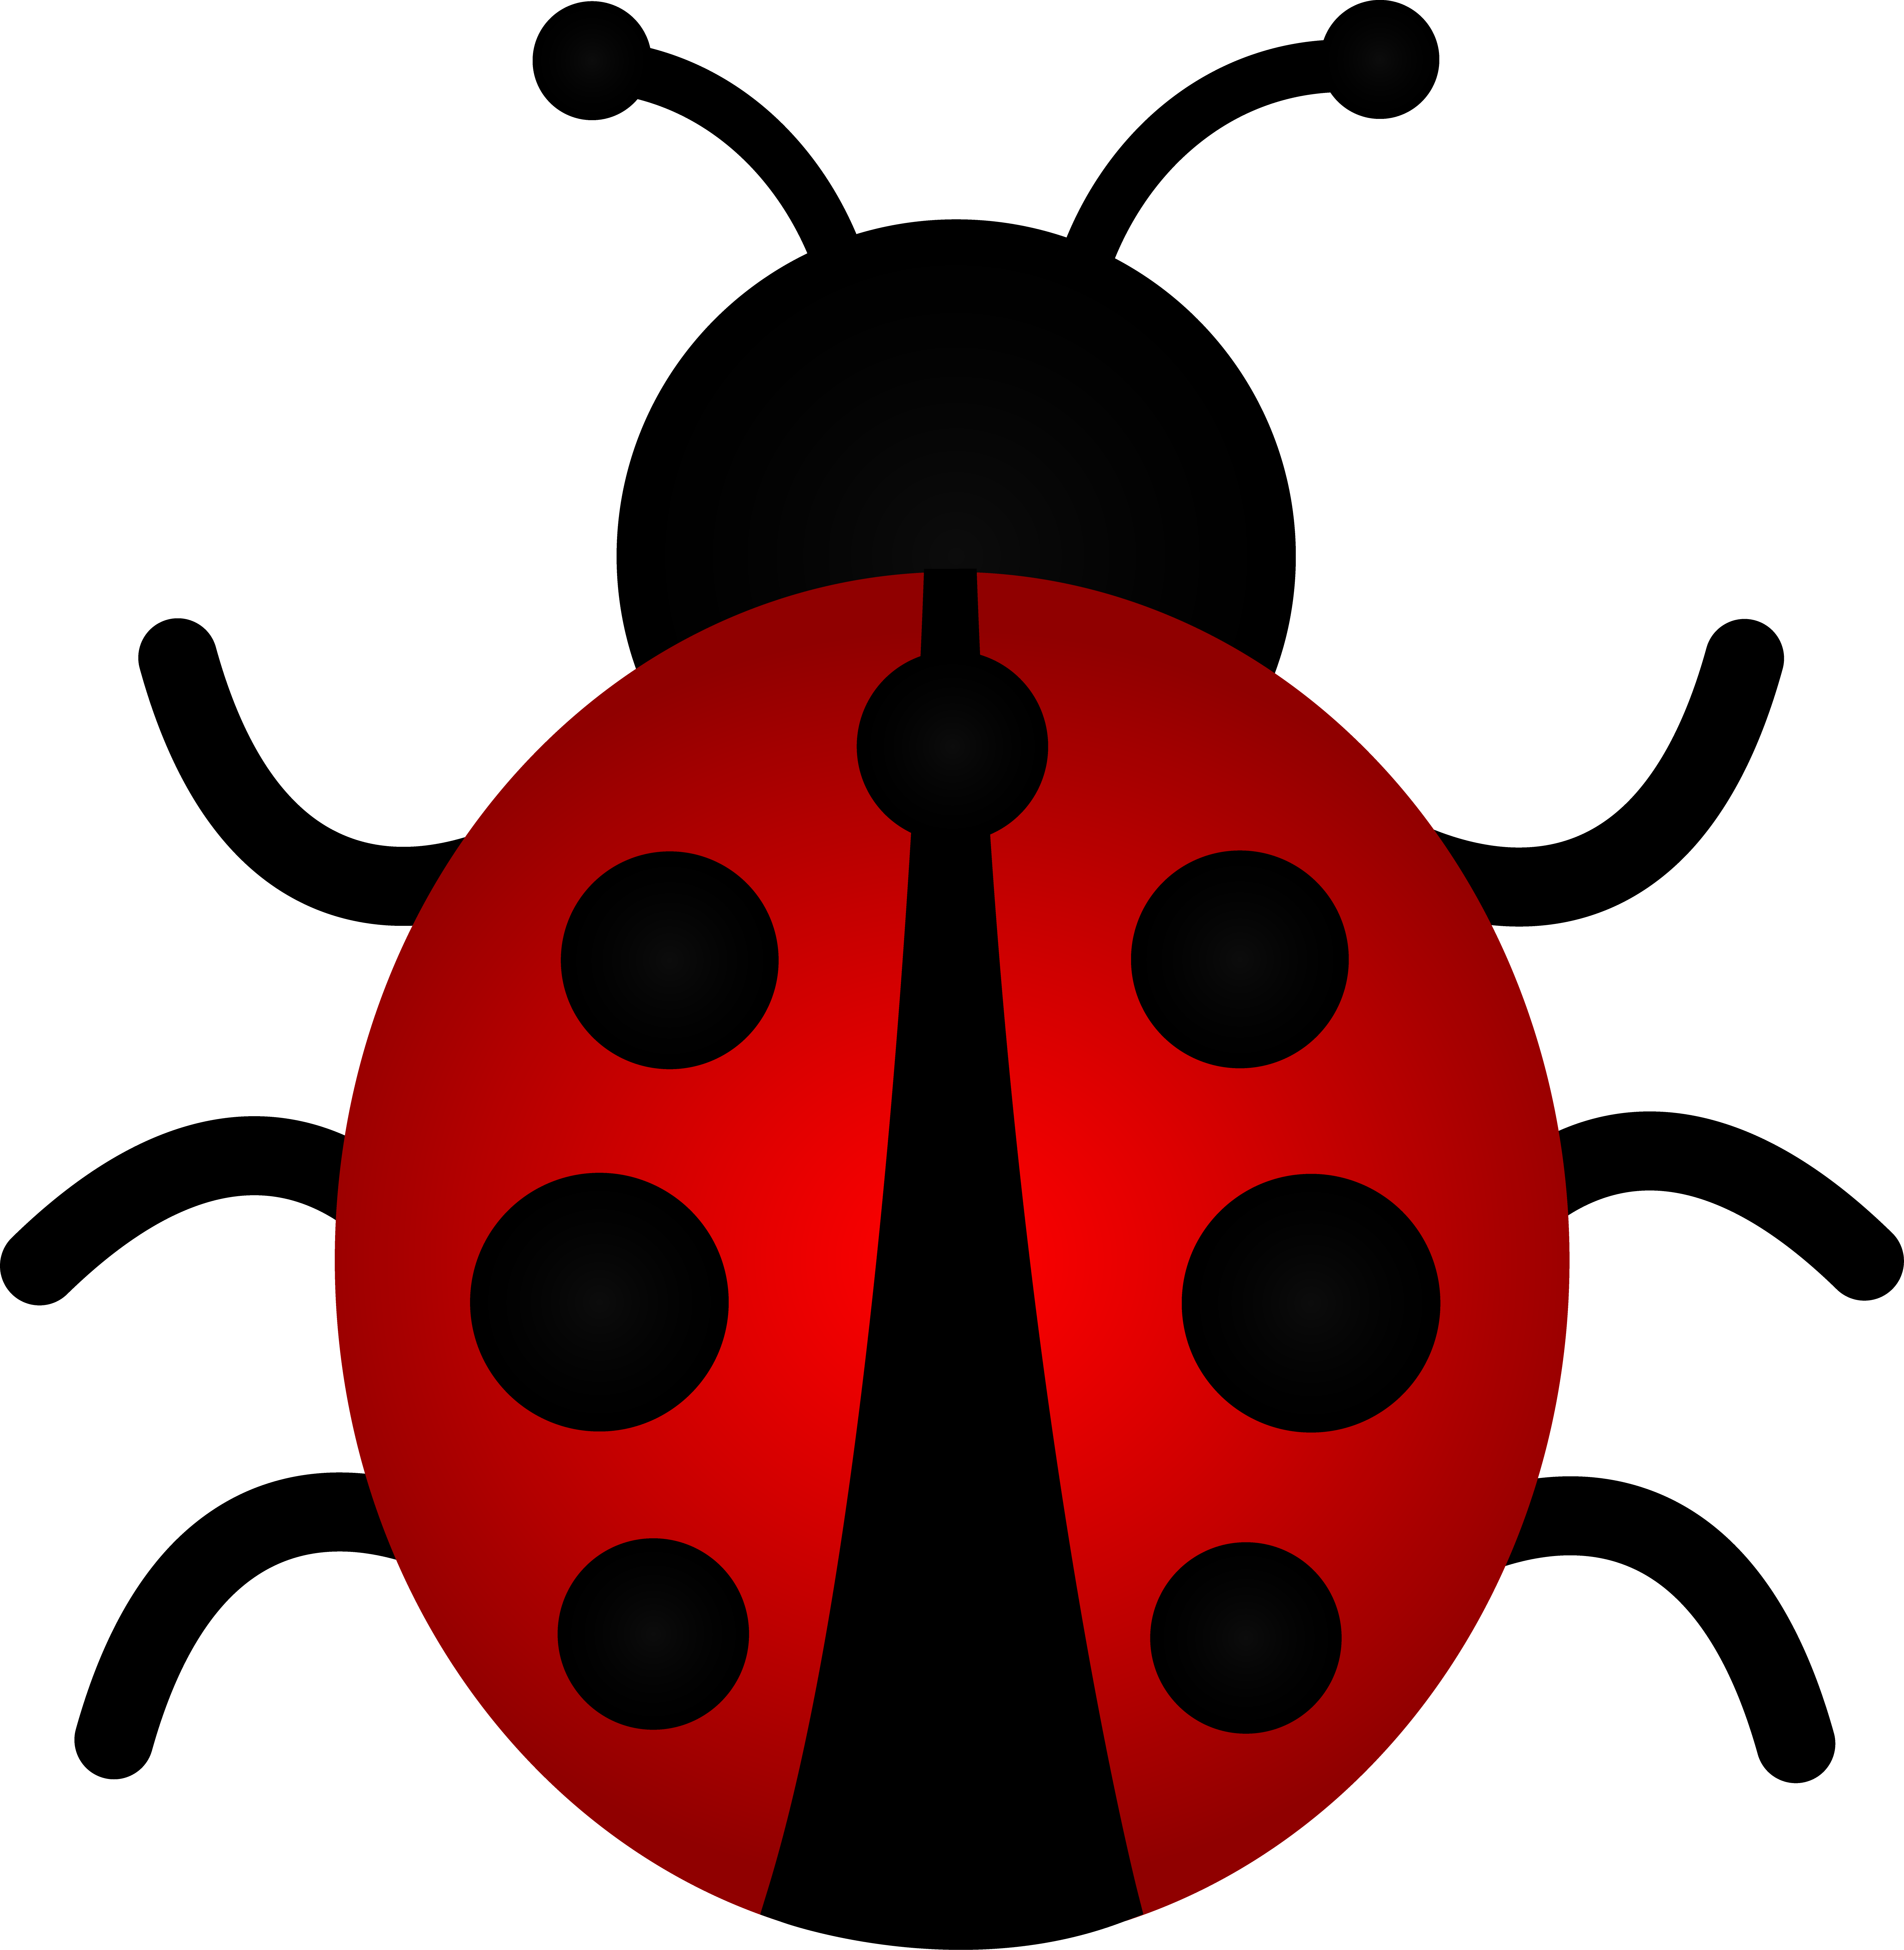 Free Animated Ladybug Clipart, Download Free Clip Art, Free.